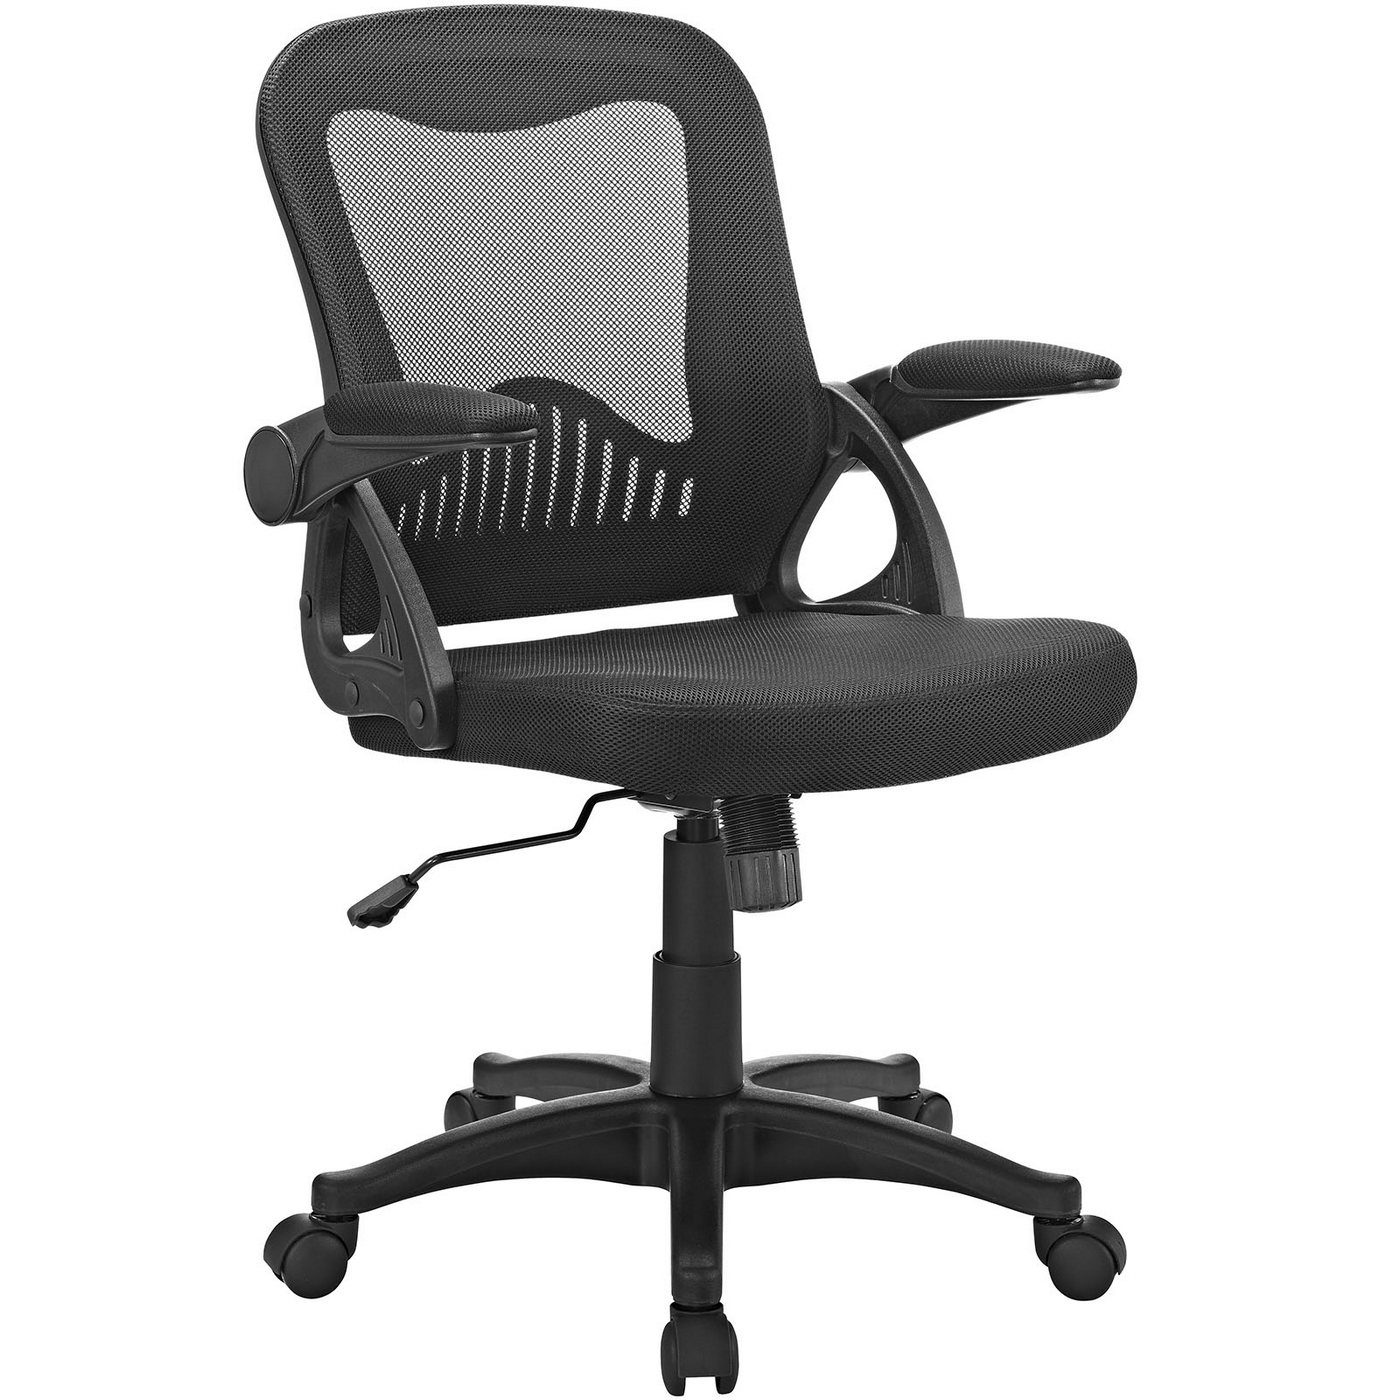 Mesh Ergonomic Office Chair Advance Modern Mesh Back Ergonomic Office Chair W Tilt